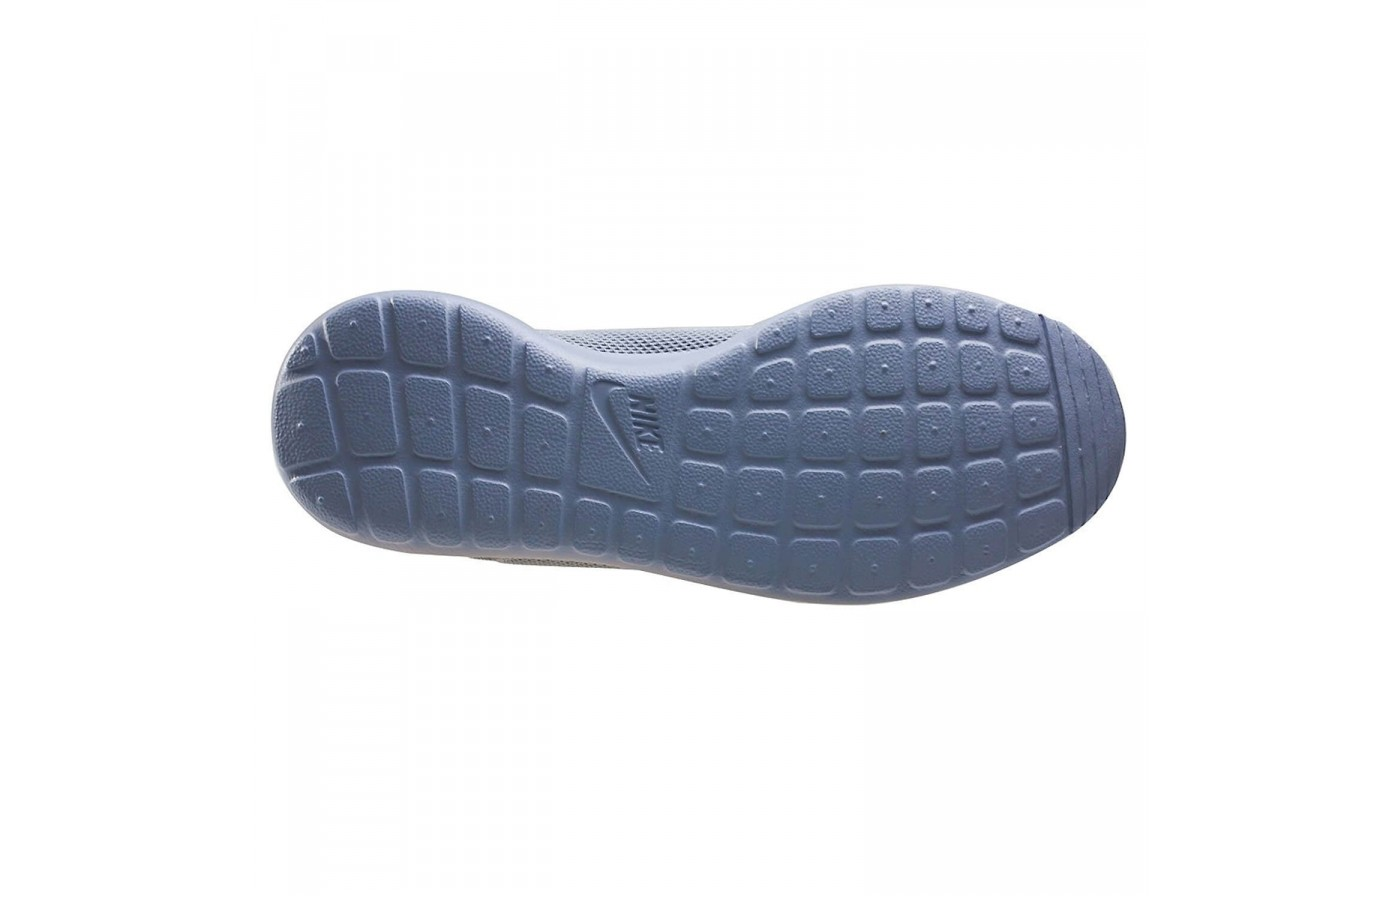 The outsole of the Nike Roshe One SE is made from abrasion-resistant rubber.